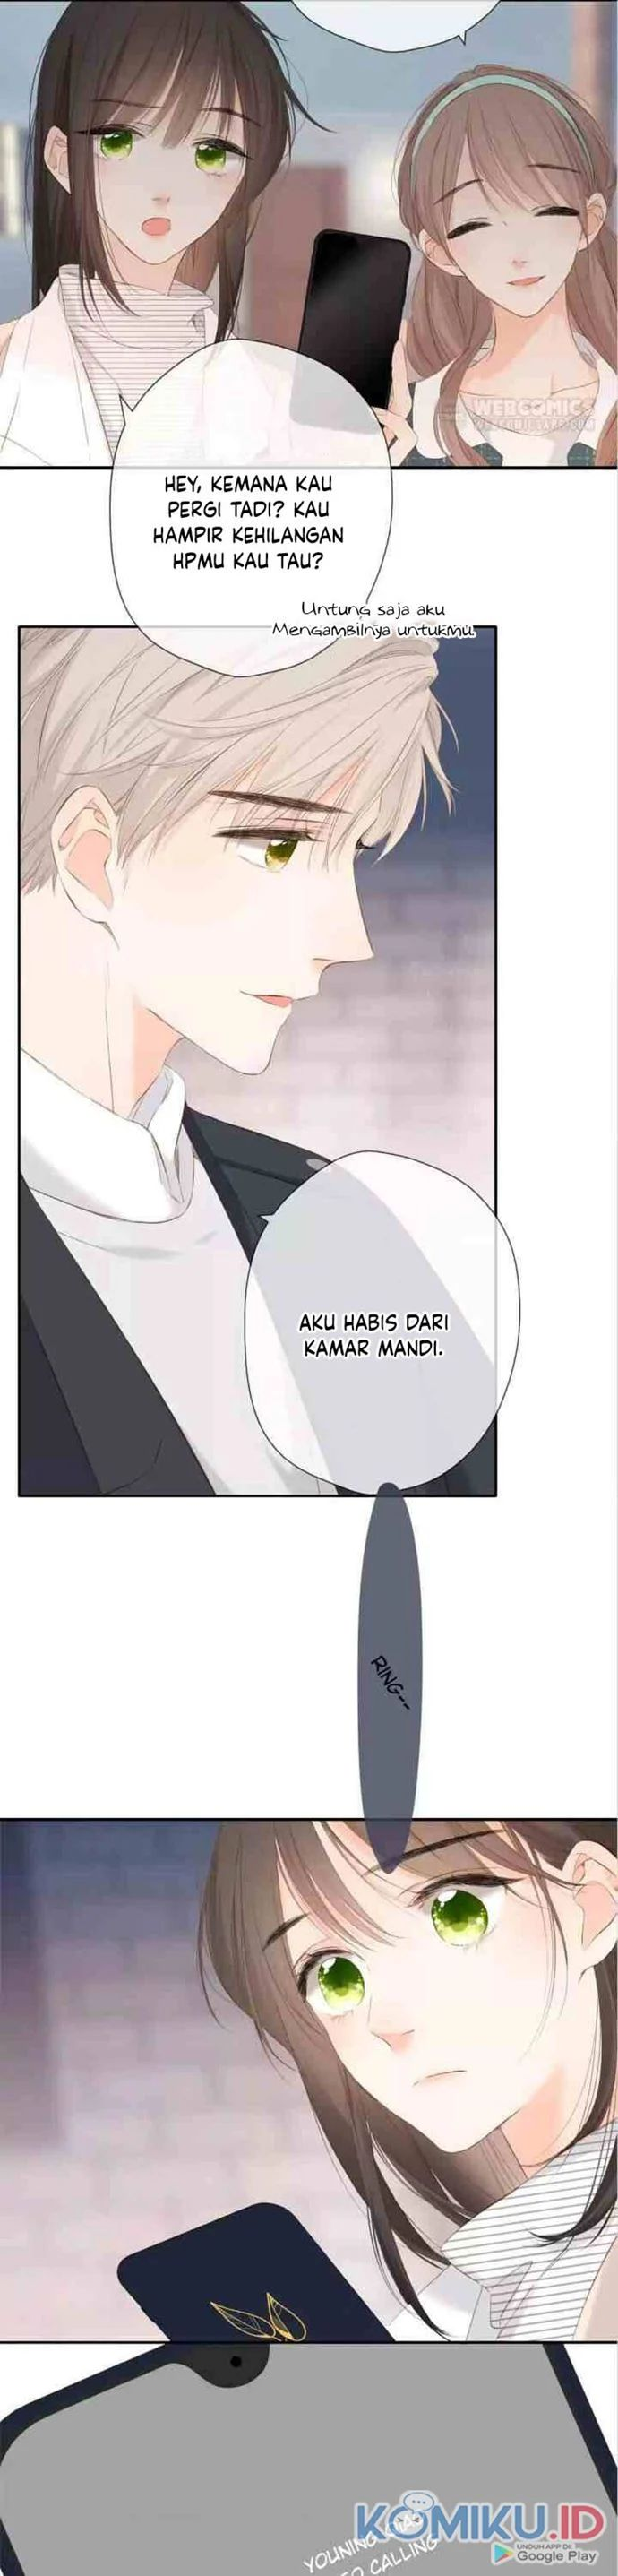 Once More Chapter 40